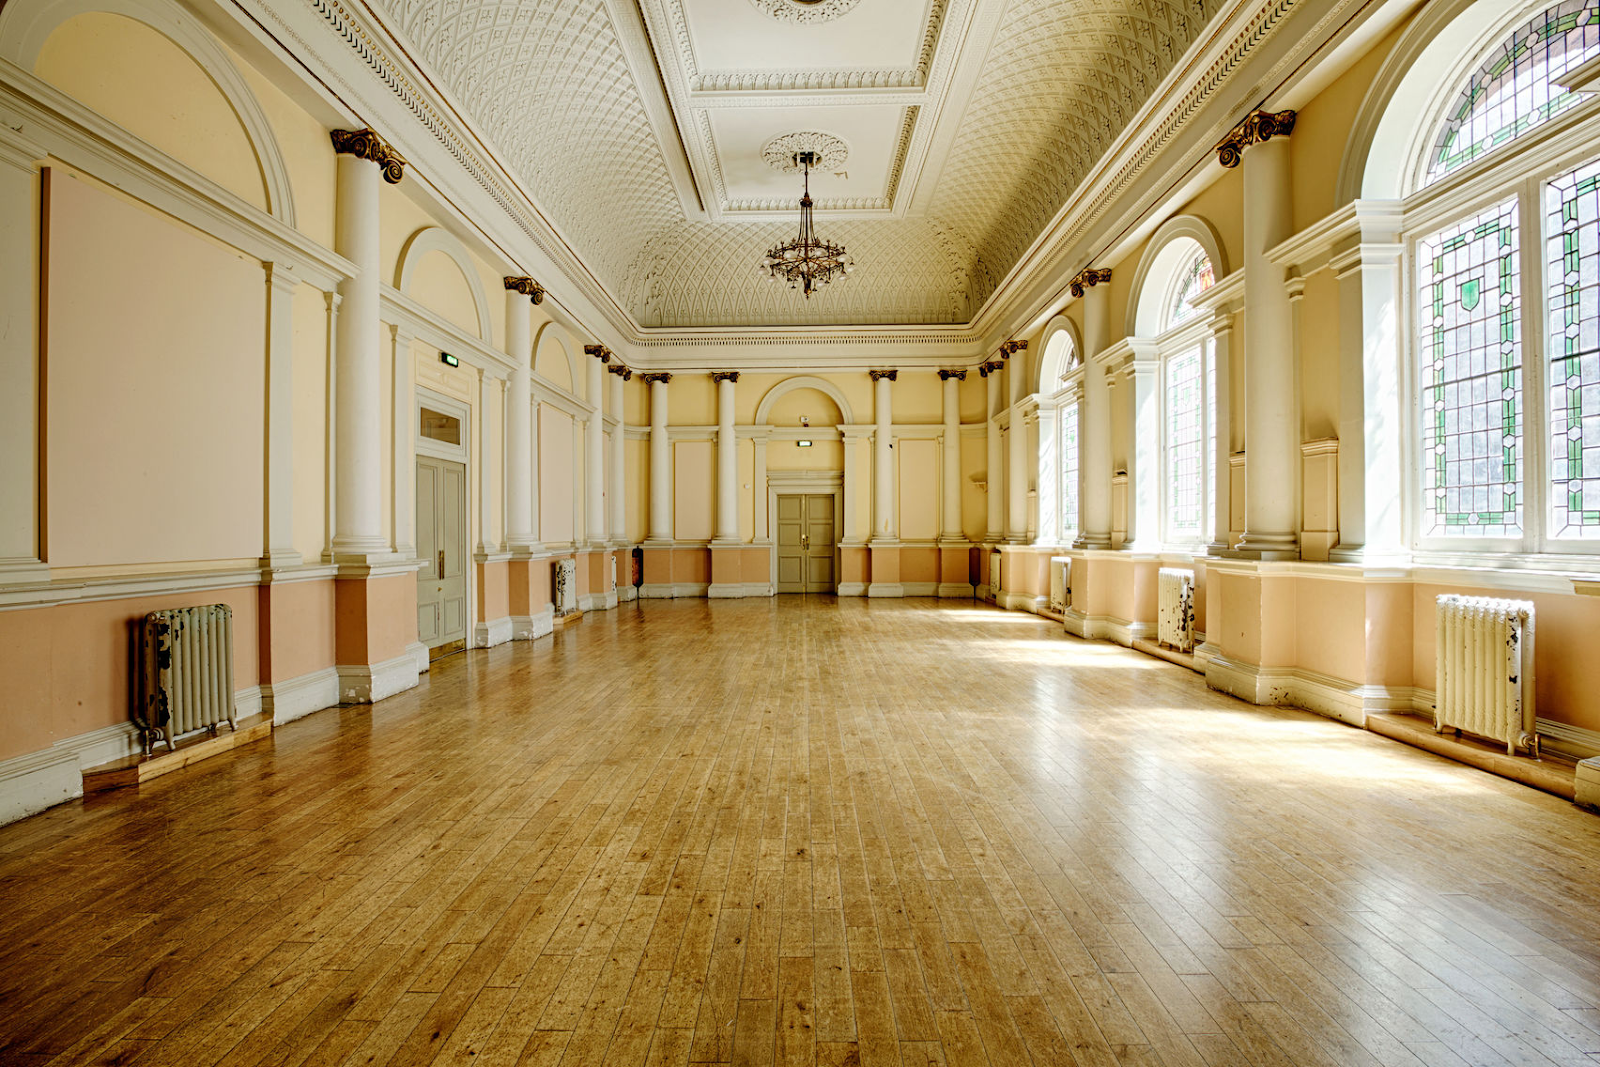 council chamber at shoreditch town hall is a grand event space in London